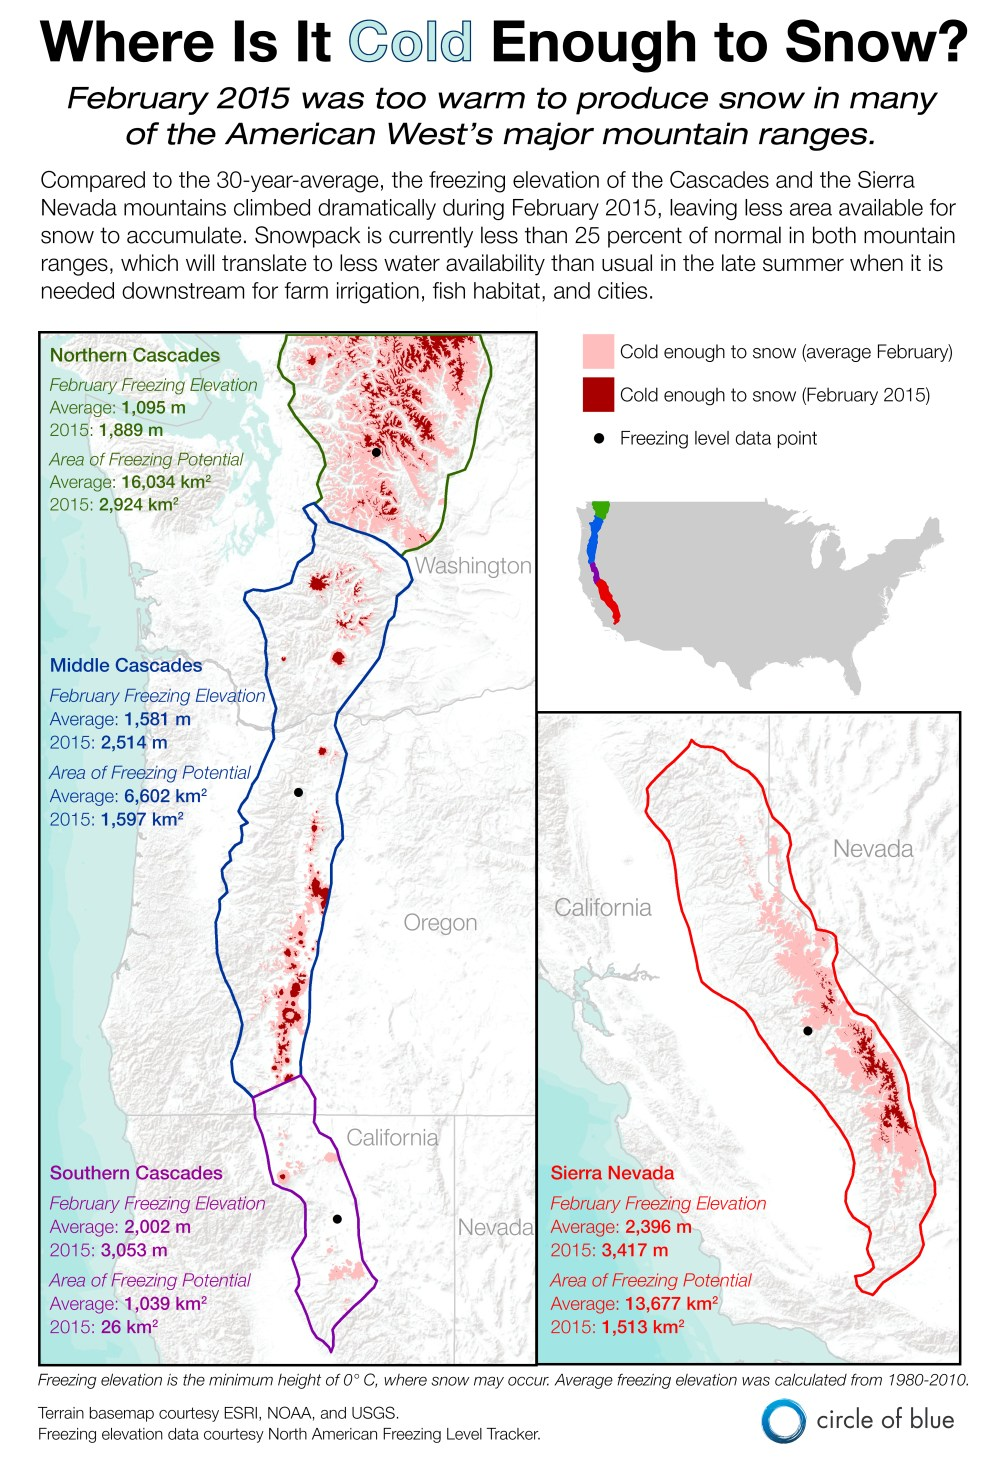 Infographic Graphic Map Winter Snowpack Elevation February 2015 Sierra Nevada Cascade Mountain Freezing Level Washington Oregon California Kaye LaFond Circle of Blue